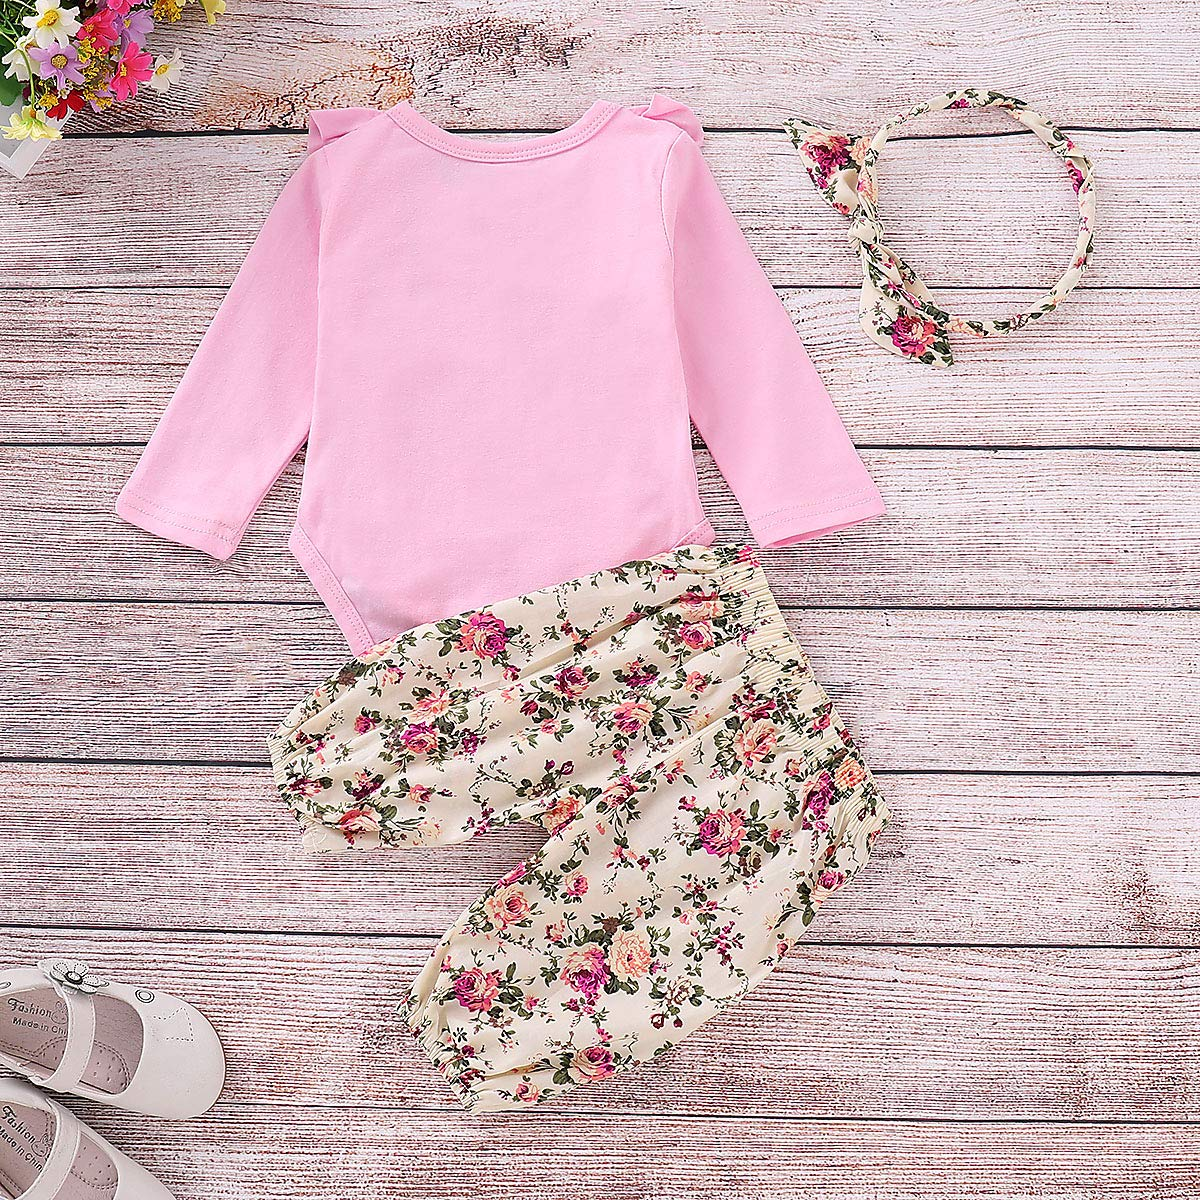 33037449bb5 Amazon.com  Newborn Girl Clothes 3Pcs Girls Baby Outfit Pink Ruffle Long  Sleeve Rompers Tops + Yellow Floral Big Bow Long Pant Sets + Yellow Floral  Headband ...